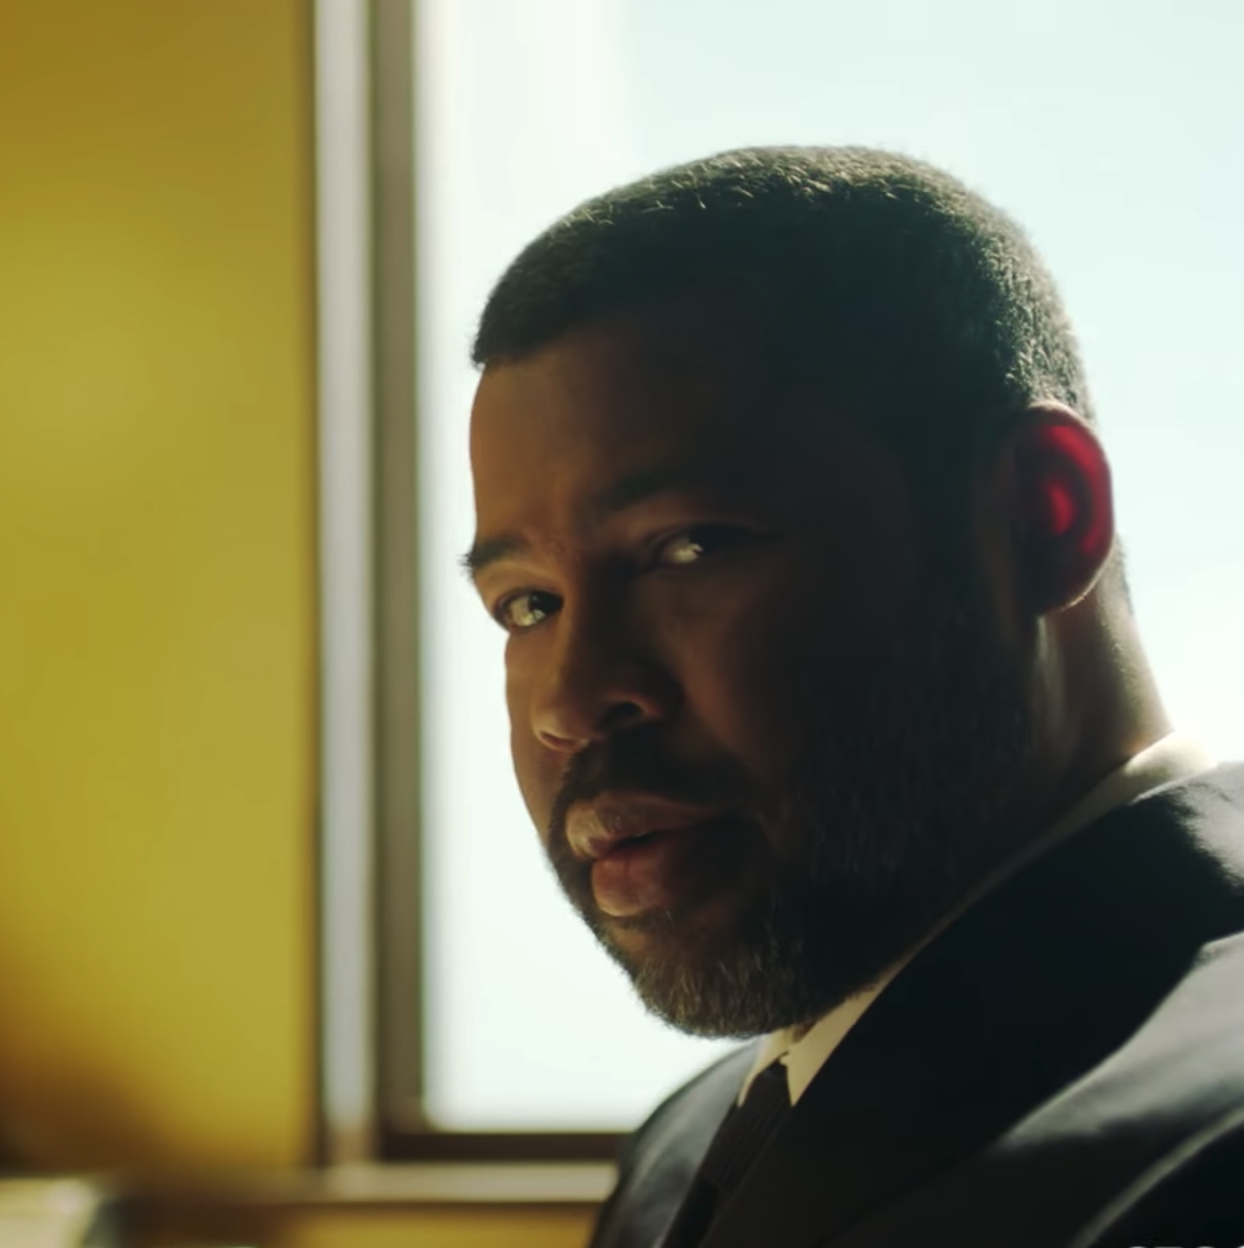 The New Twilight Zone Trailer Reimagines the Iconic Series With Jordan Peele at the Helm